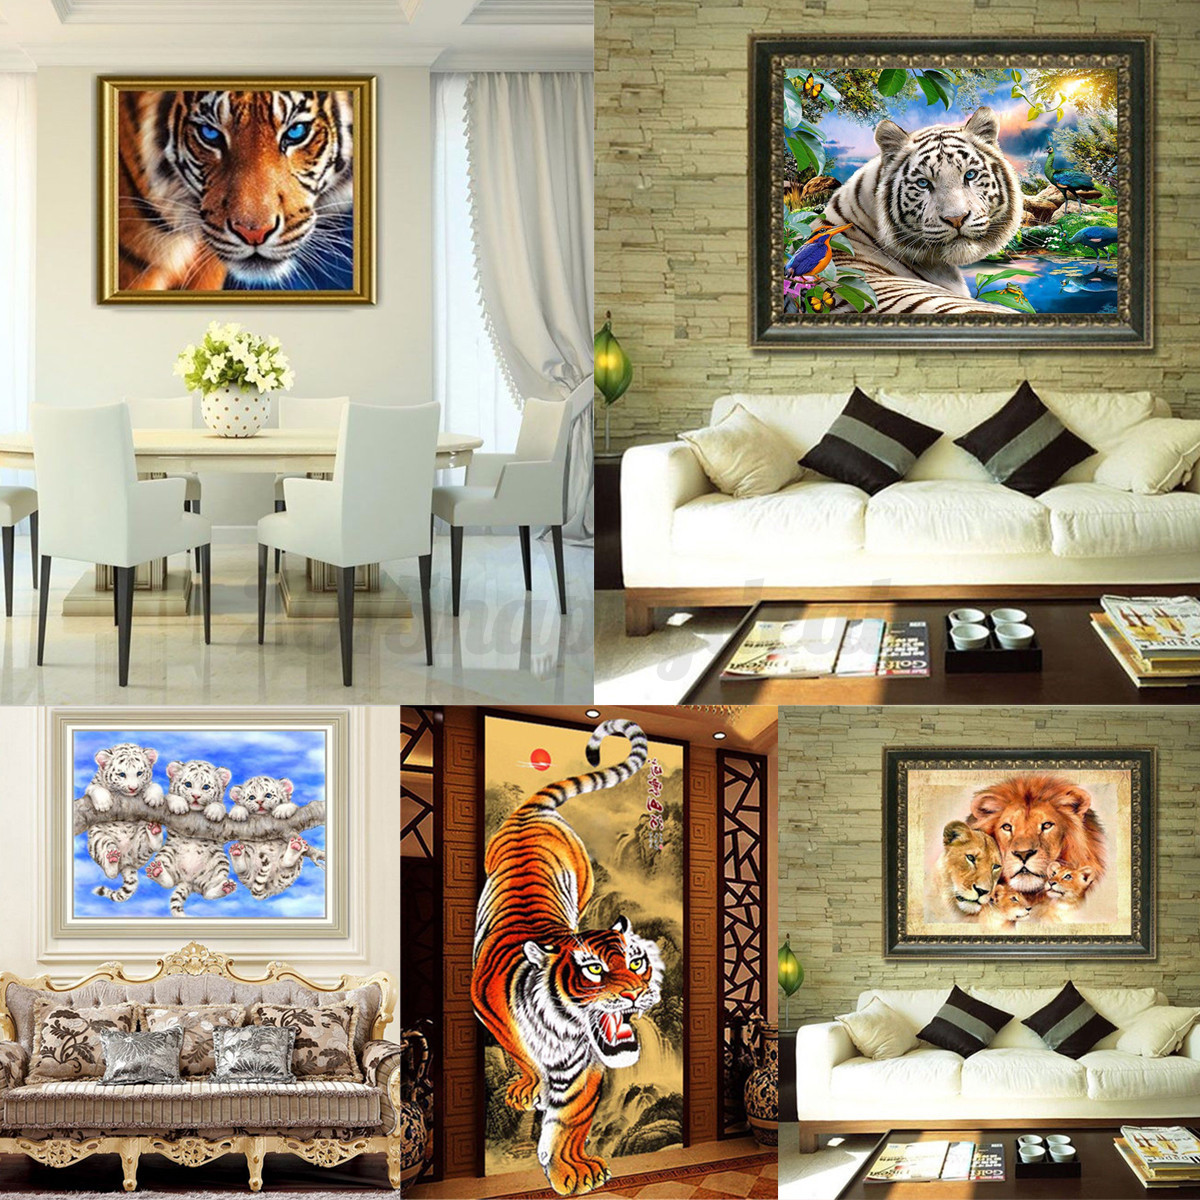 5D DIY Diamond Painting Tiger Lions Animals Embroidery